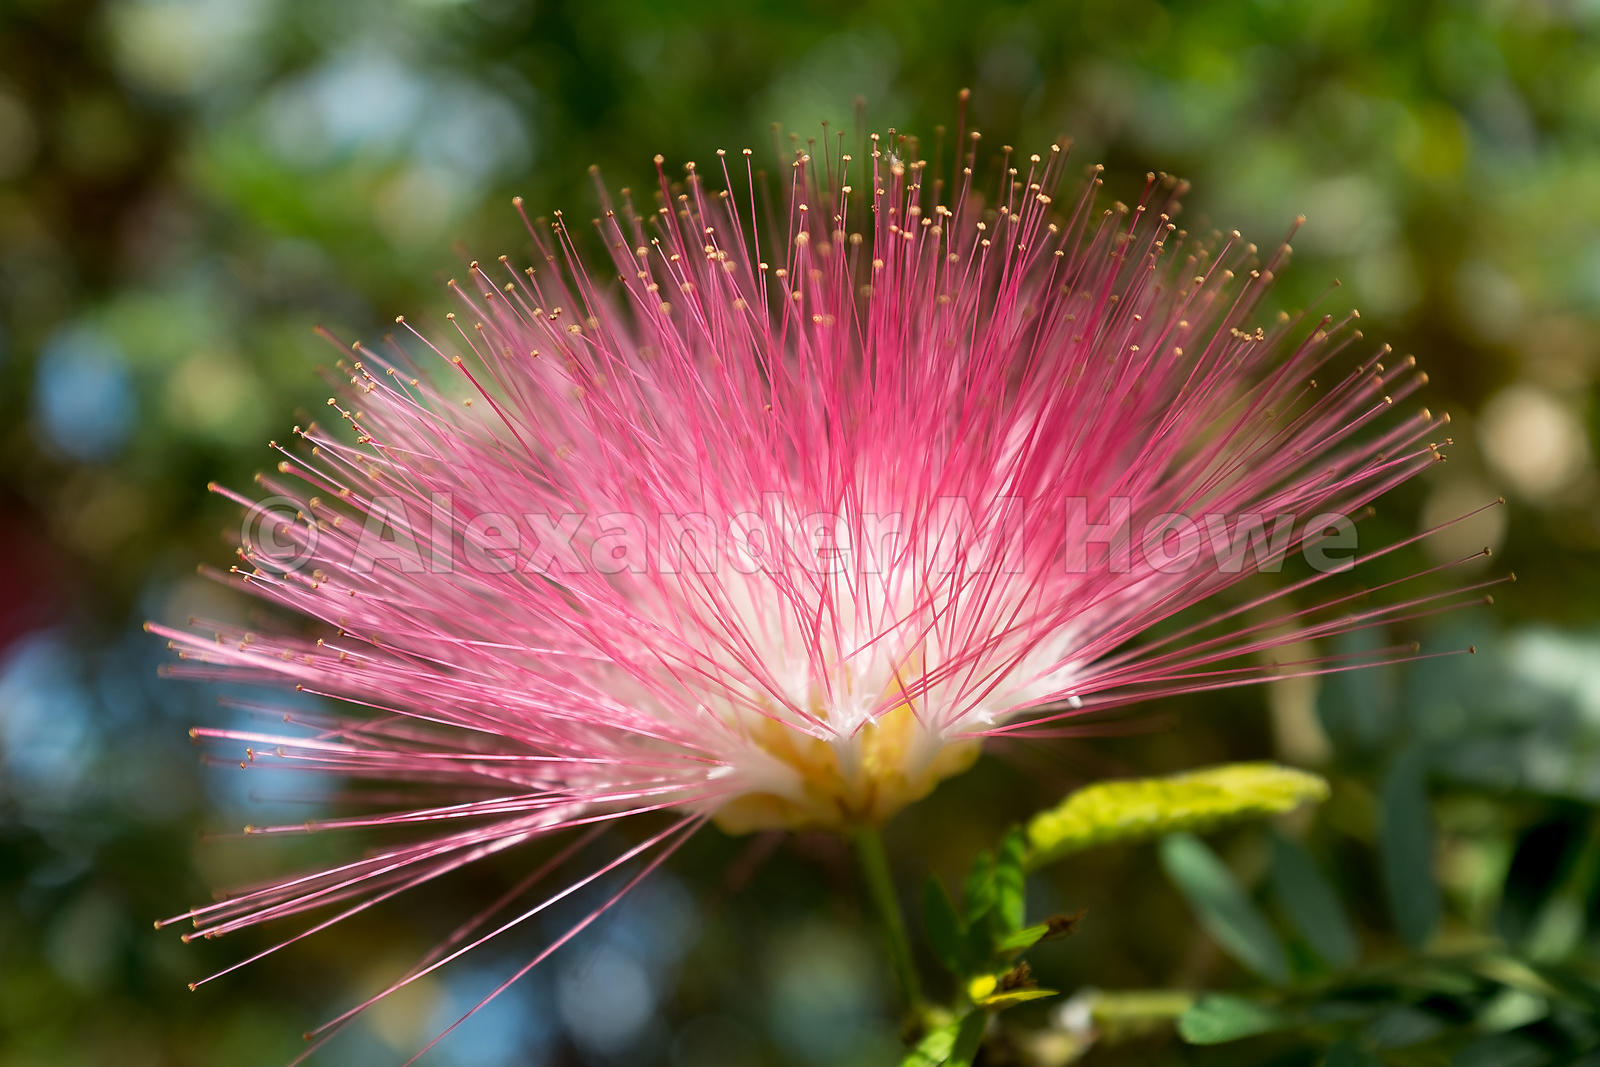 The Pink Powder Puff Flower